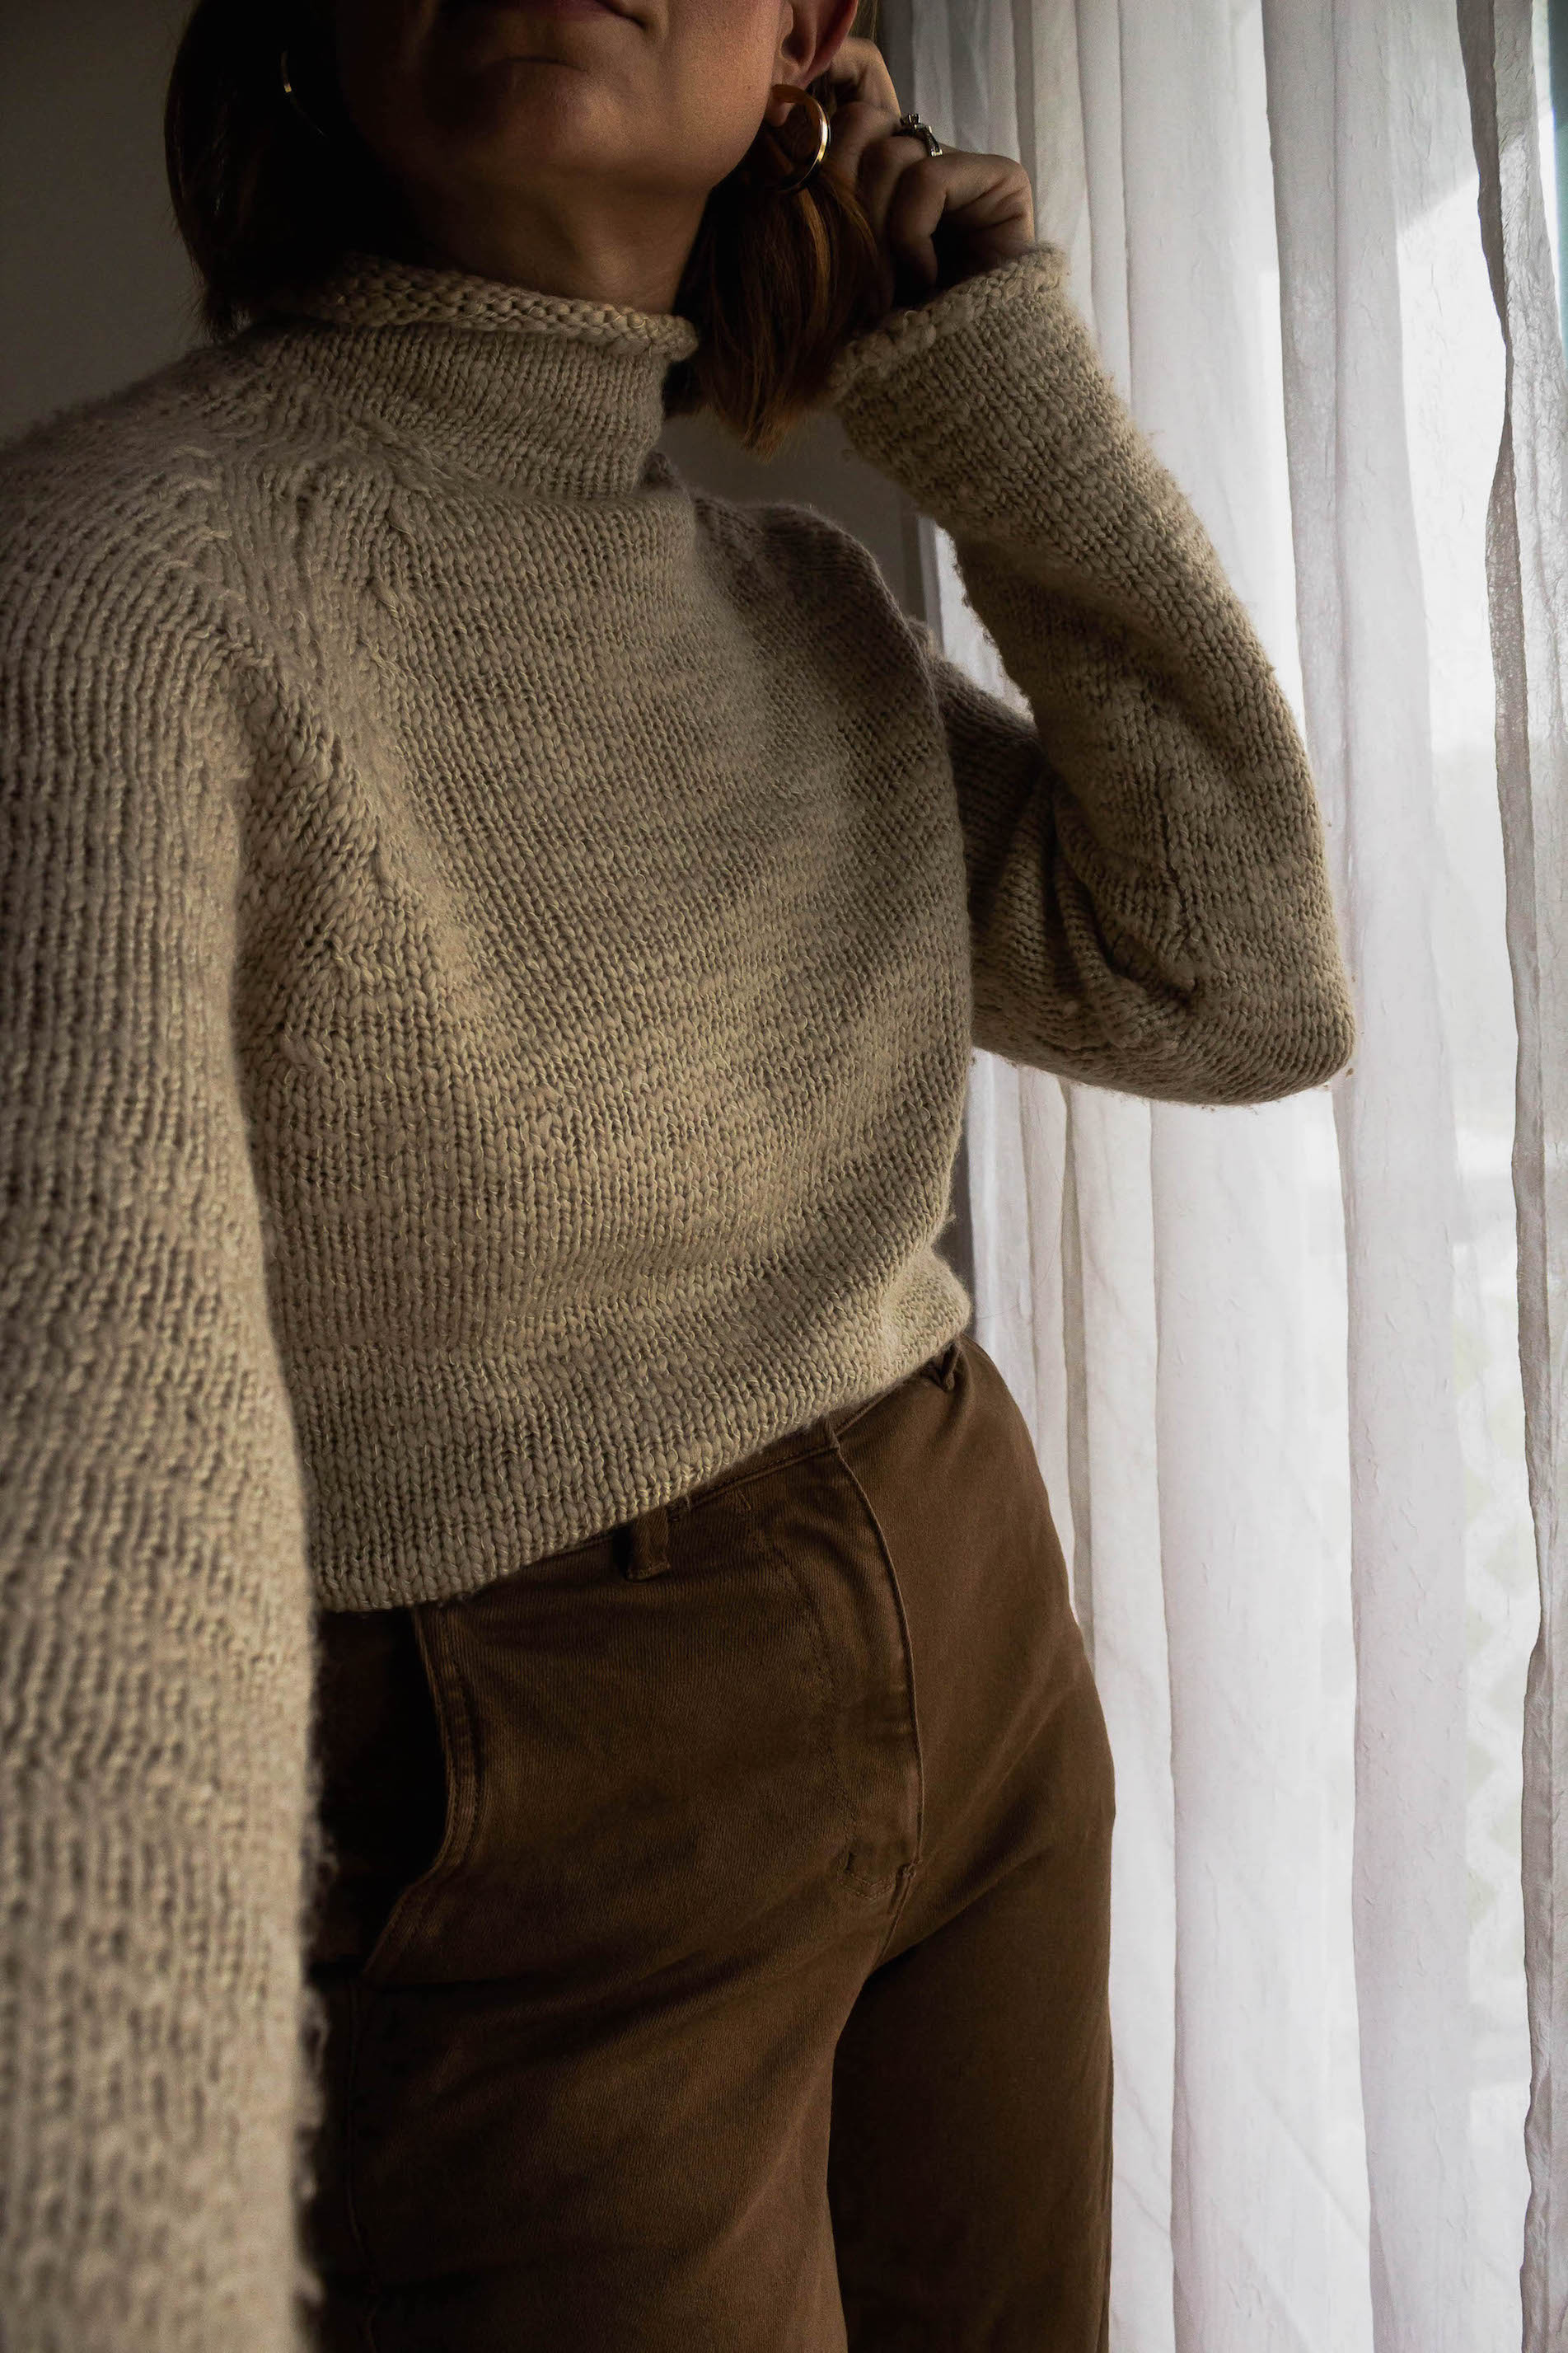 Vintage turtleneck sweater detail - A Week Of Easy & Sophisticated Outfits With Karin Rambo From Truncation on The Good Trade